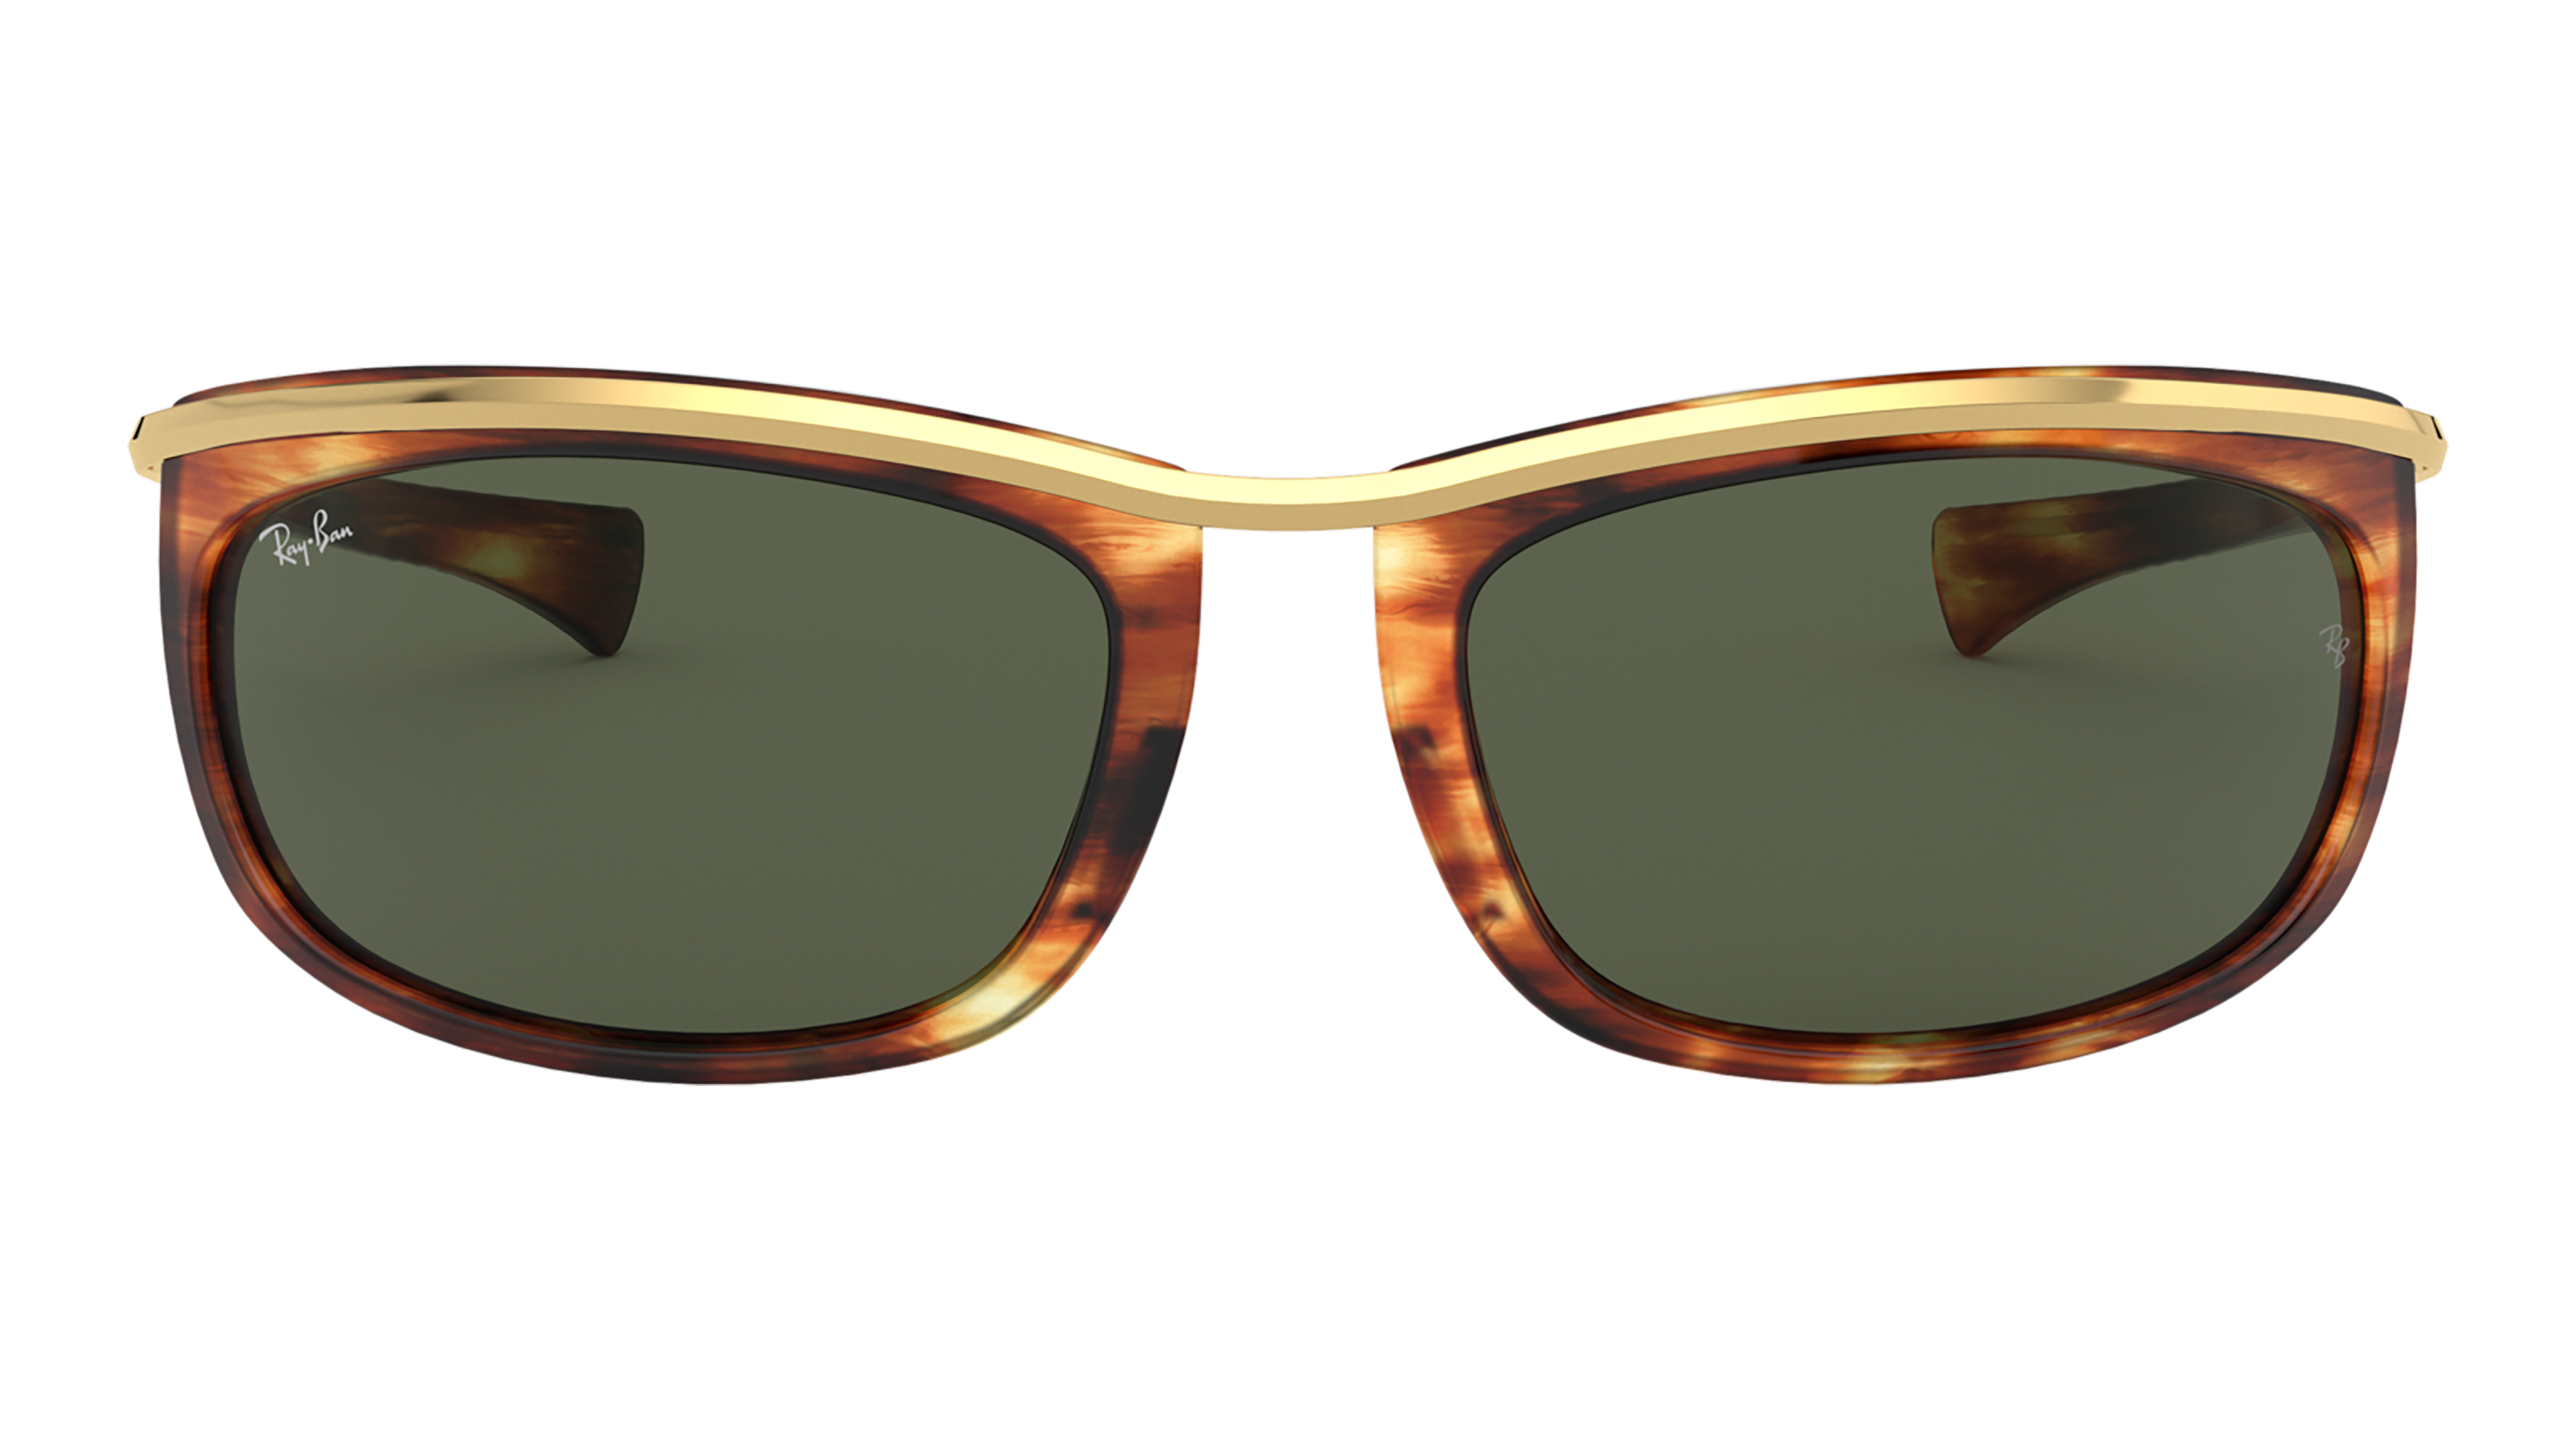 Front Ray-Ban Ray-Ban 0RB2319 954/31 62/19 Bruin, Goud/Groen